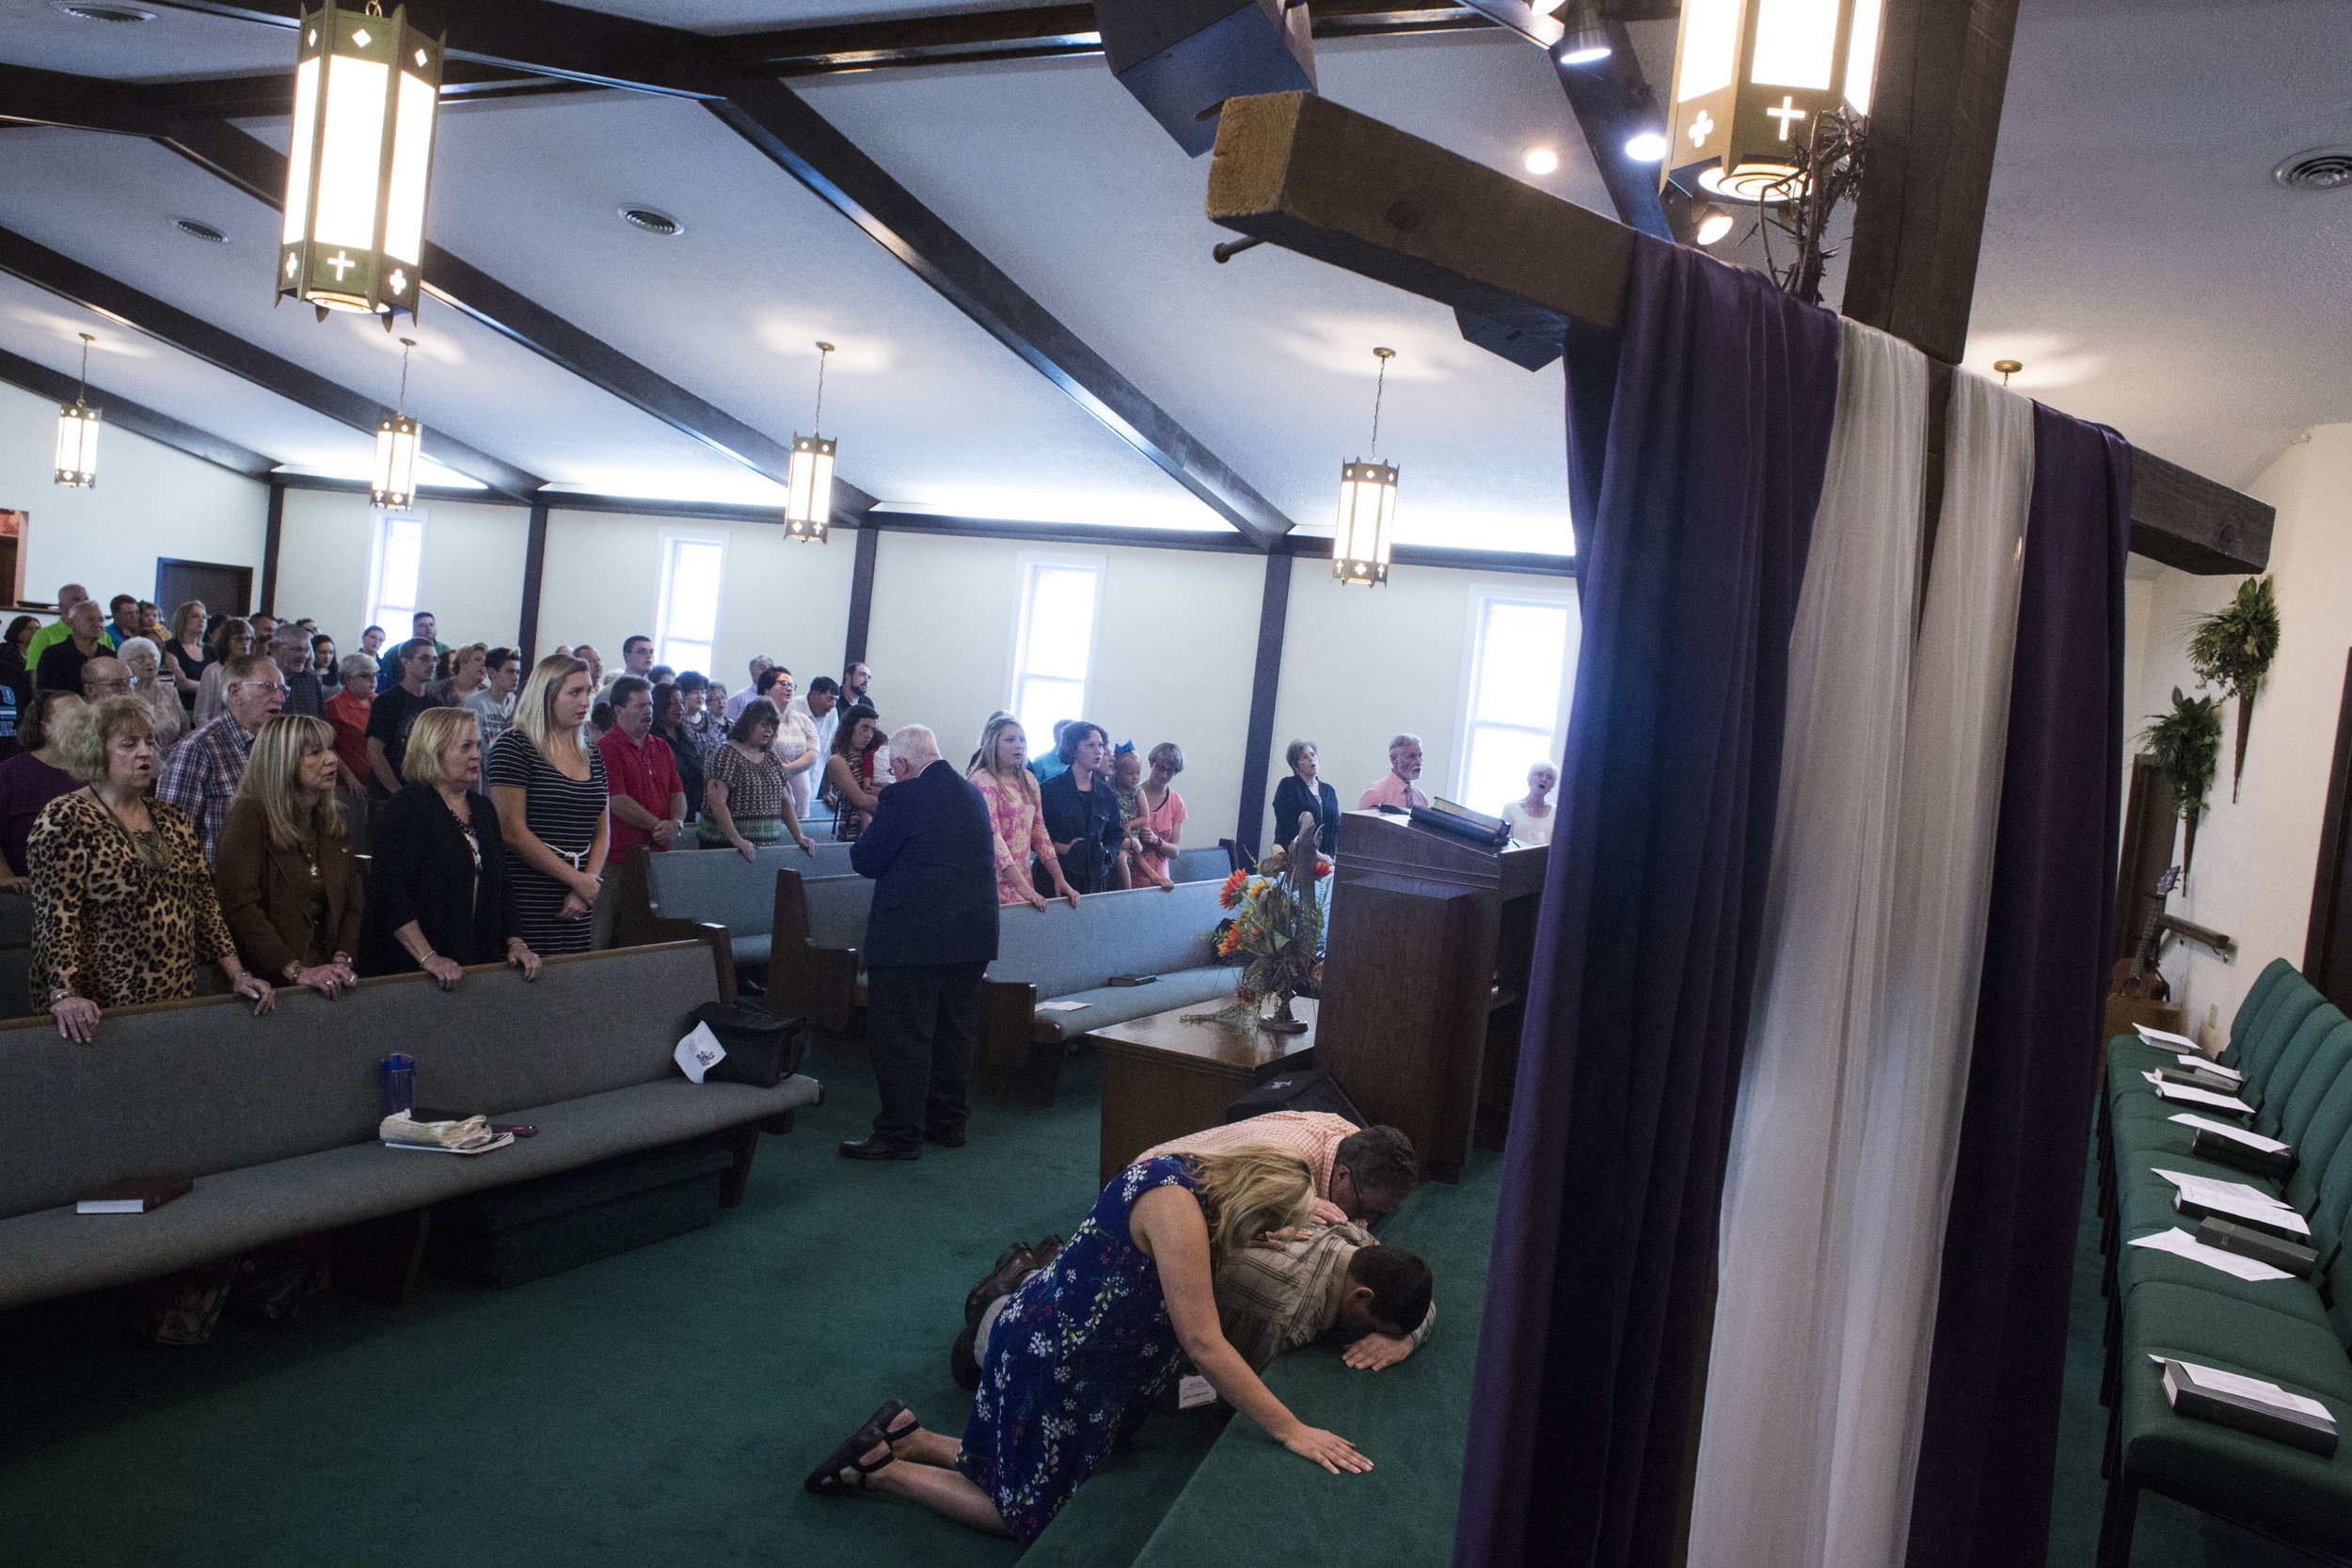 Mary Sloane, an English teacher at Floyd Central High School, prays for a member of her congregation at First Baptist Church in McDowell, Ky., on Sunday, September 24, 2017.